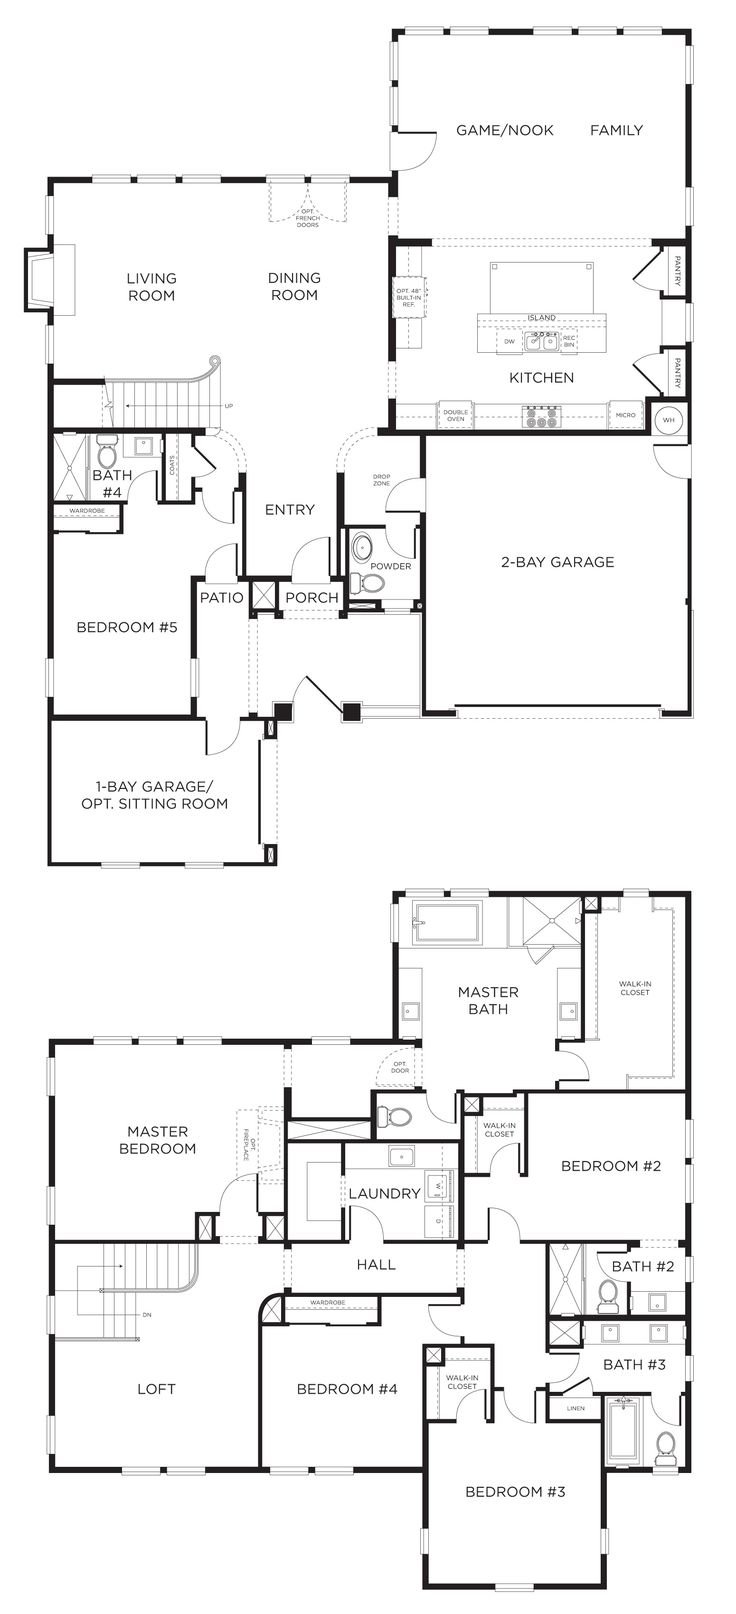 33 Best Fabulous Floorplans Images On Pinterest Floor